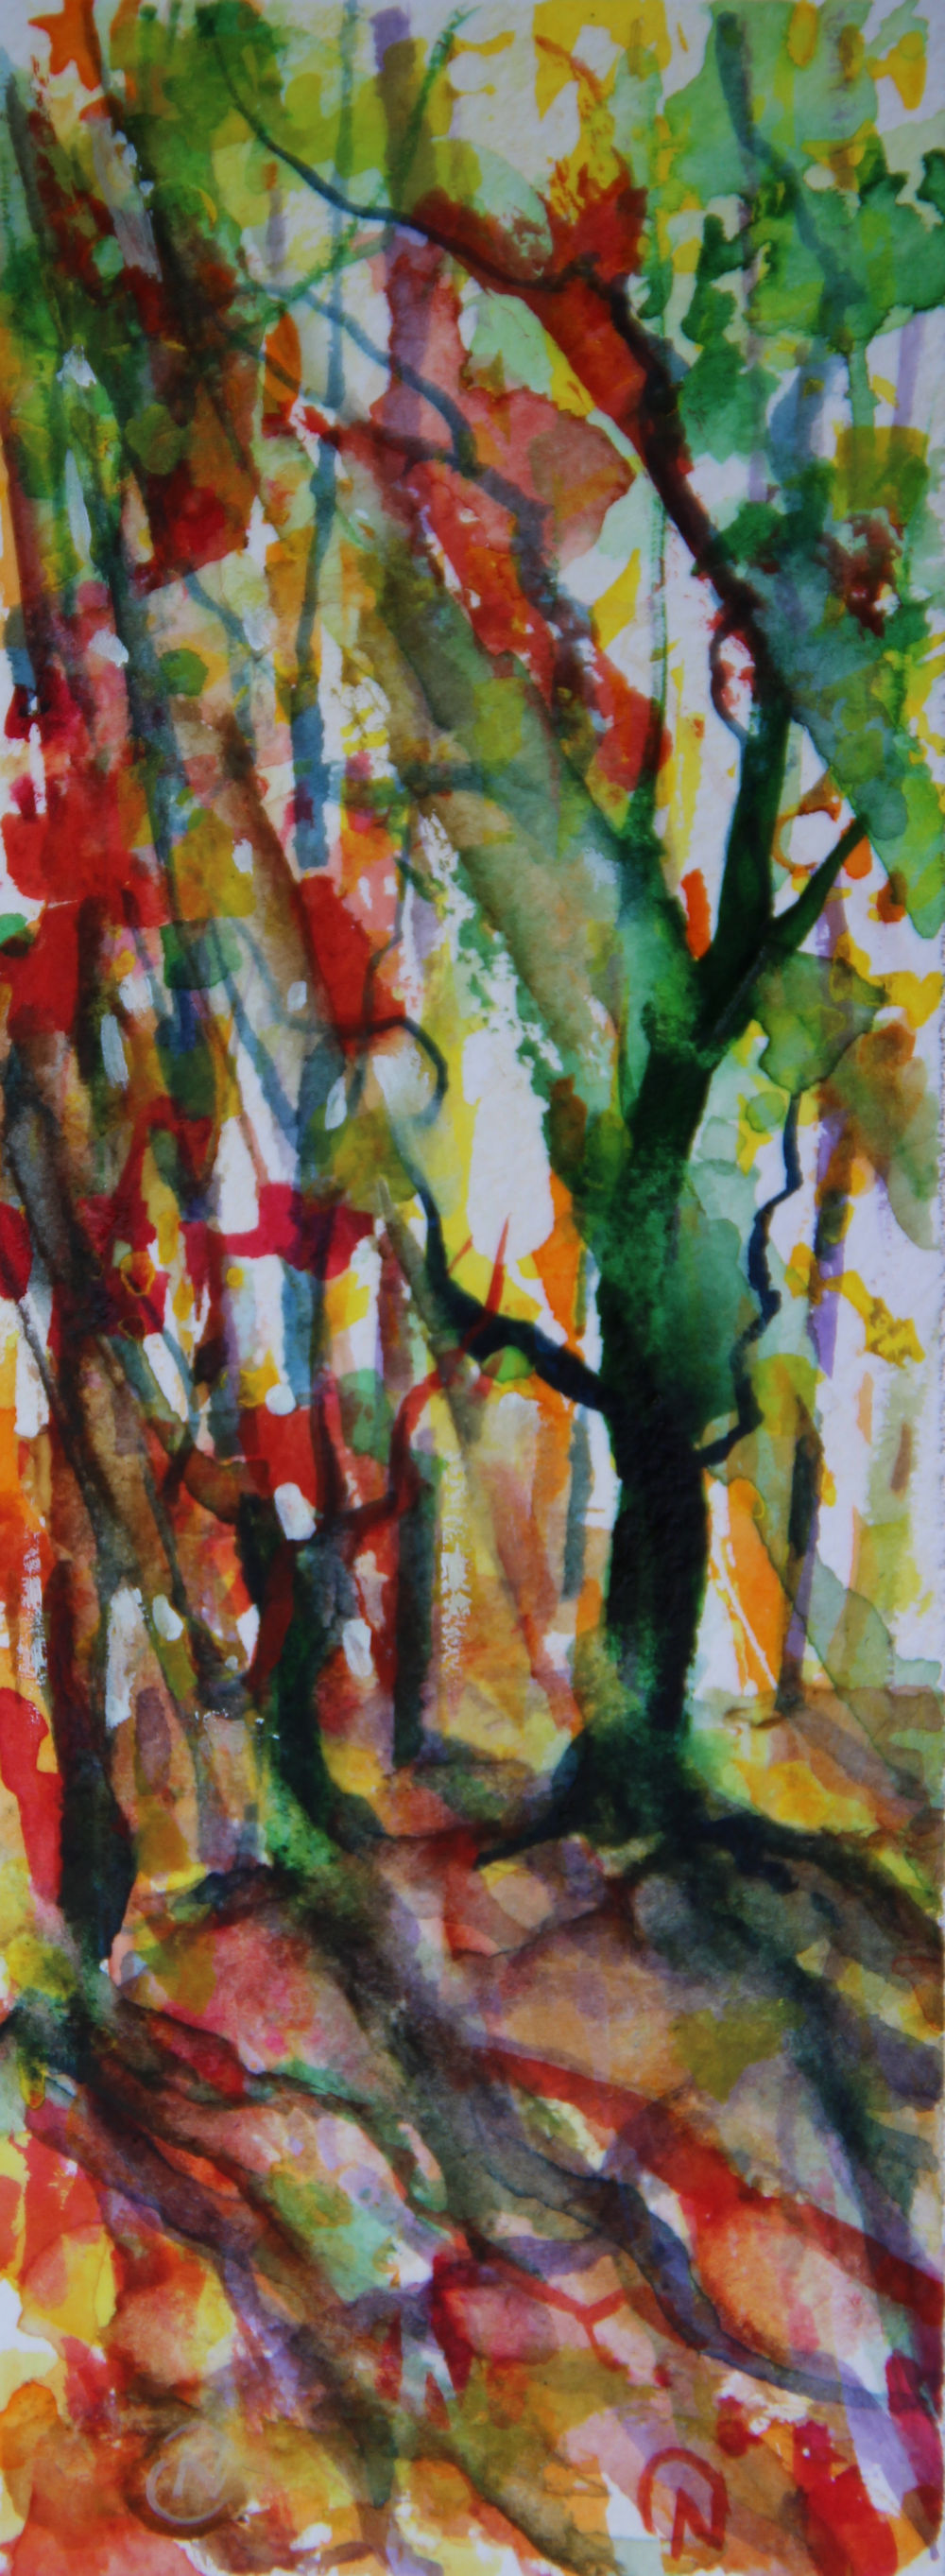 Autumn Forest Scene 09, about 6H x 2W inches watercolors on 140 lb cold pressed